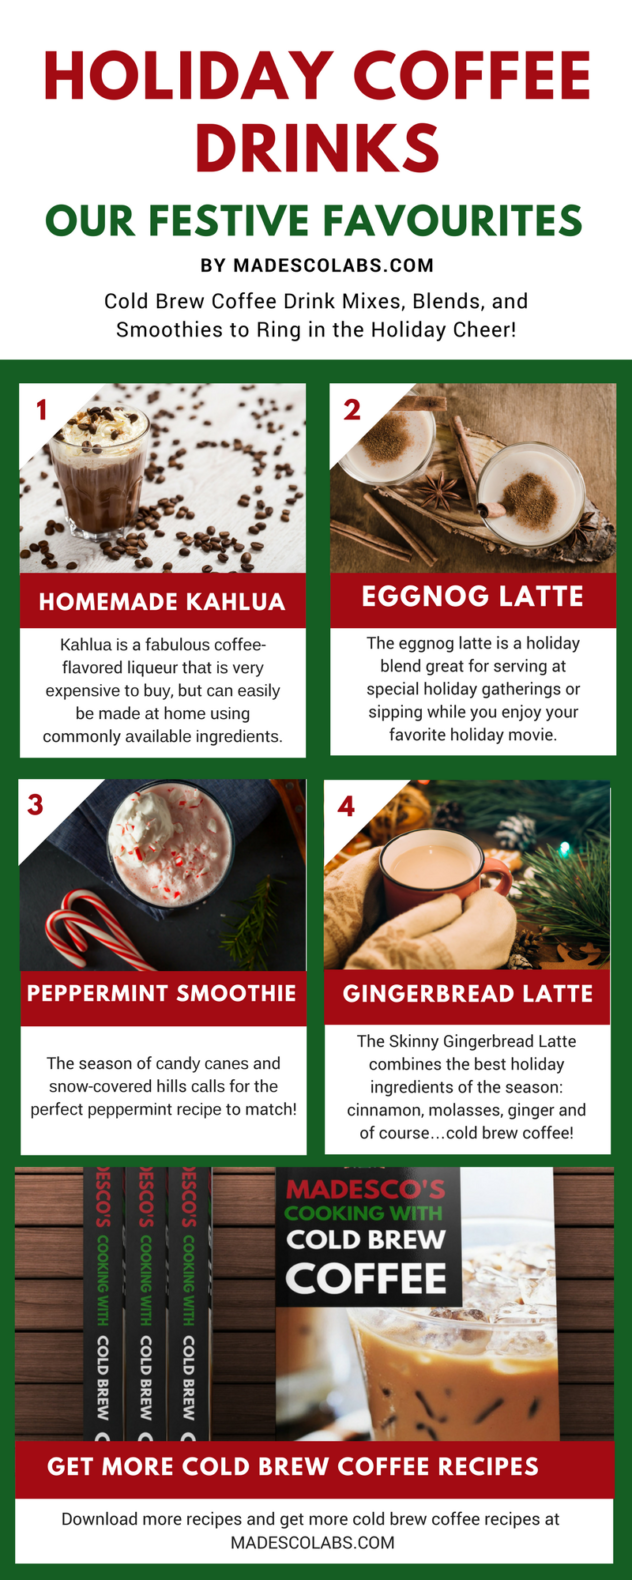 Holiday Coffee Drinks with Cold Brew Coffee